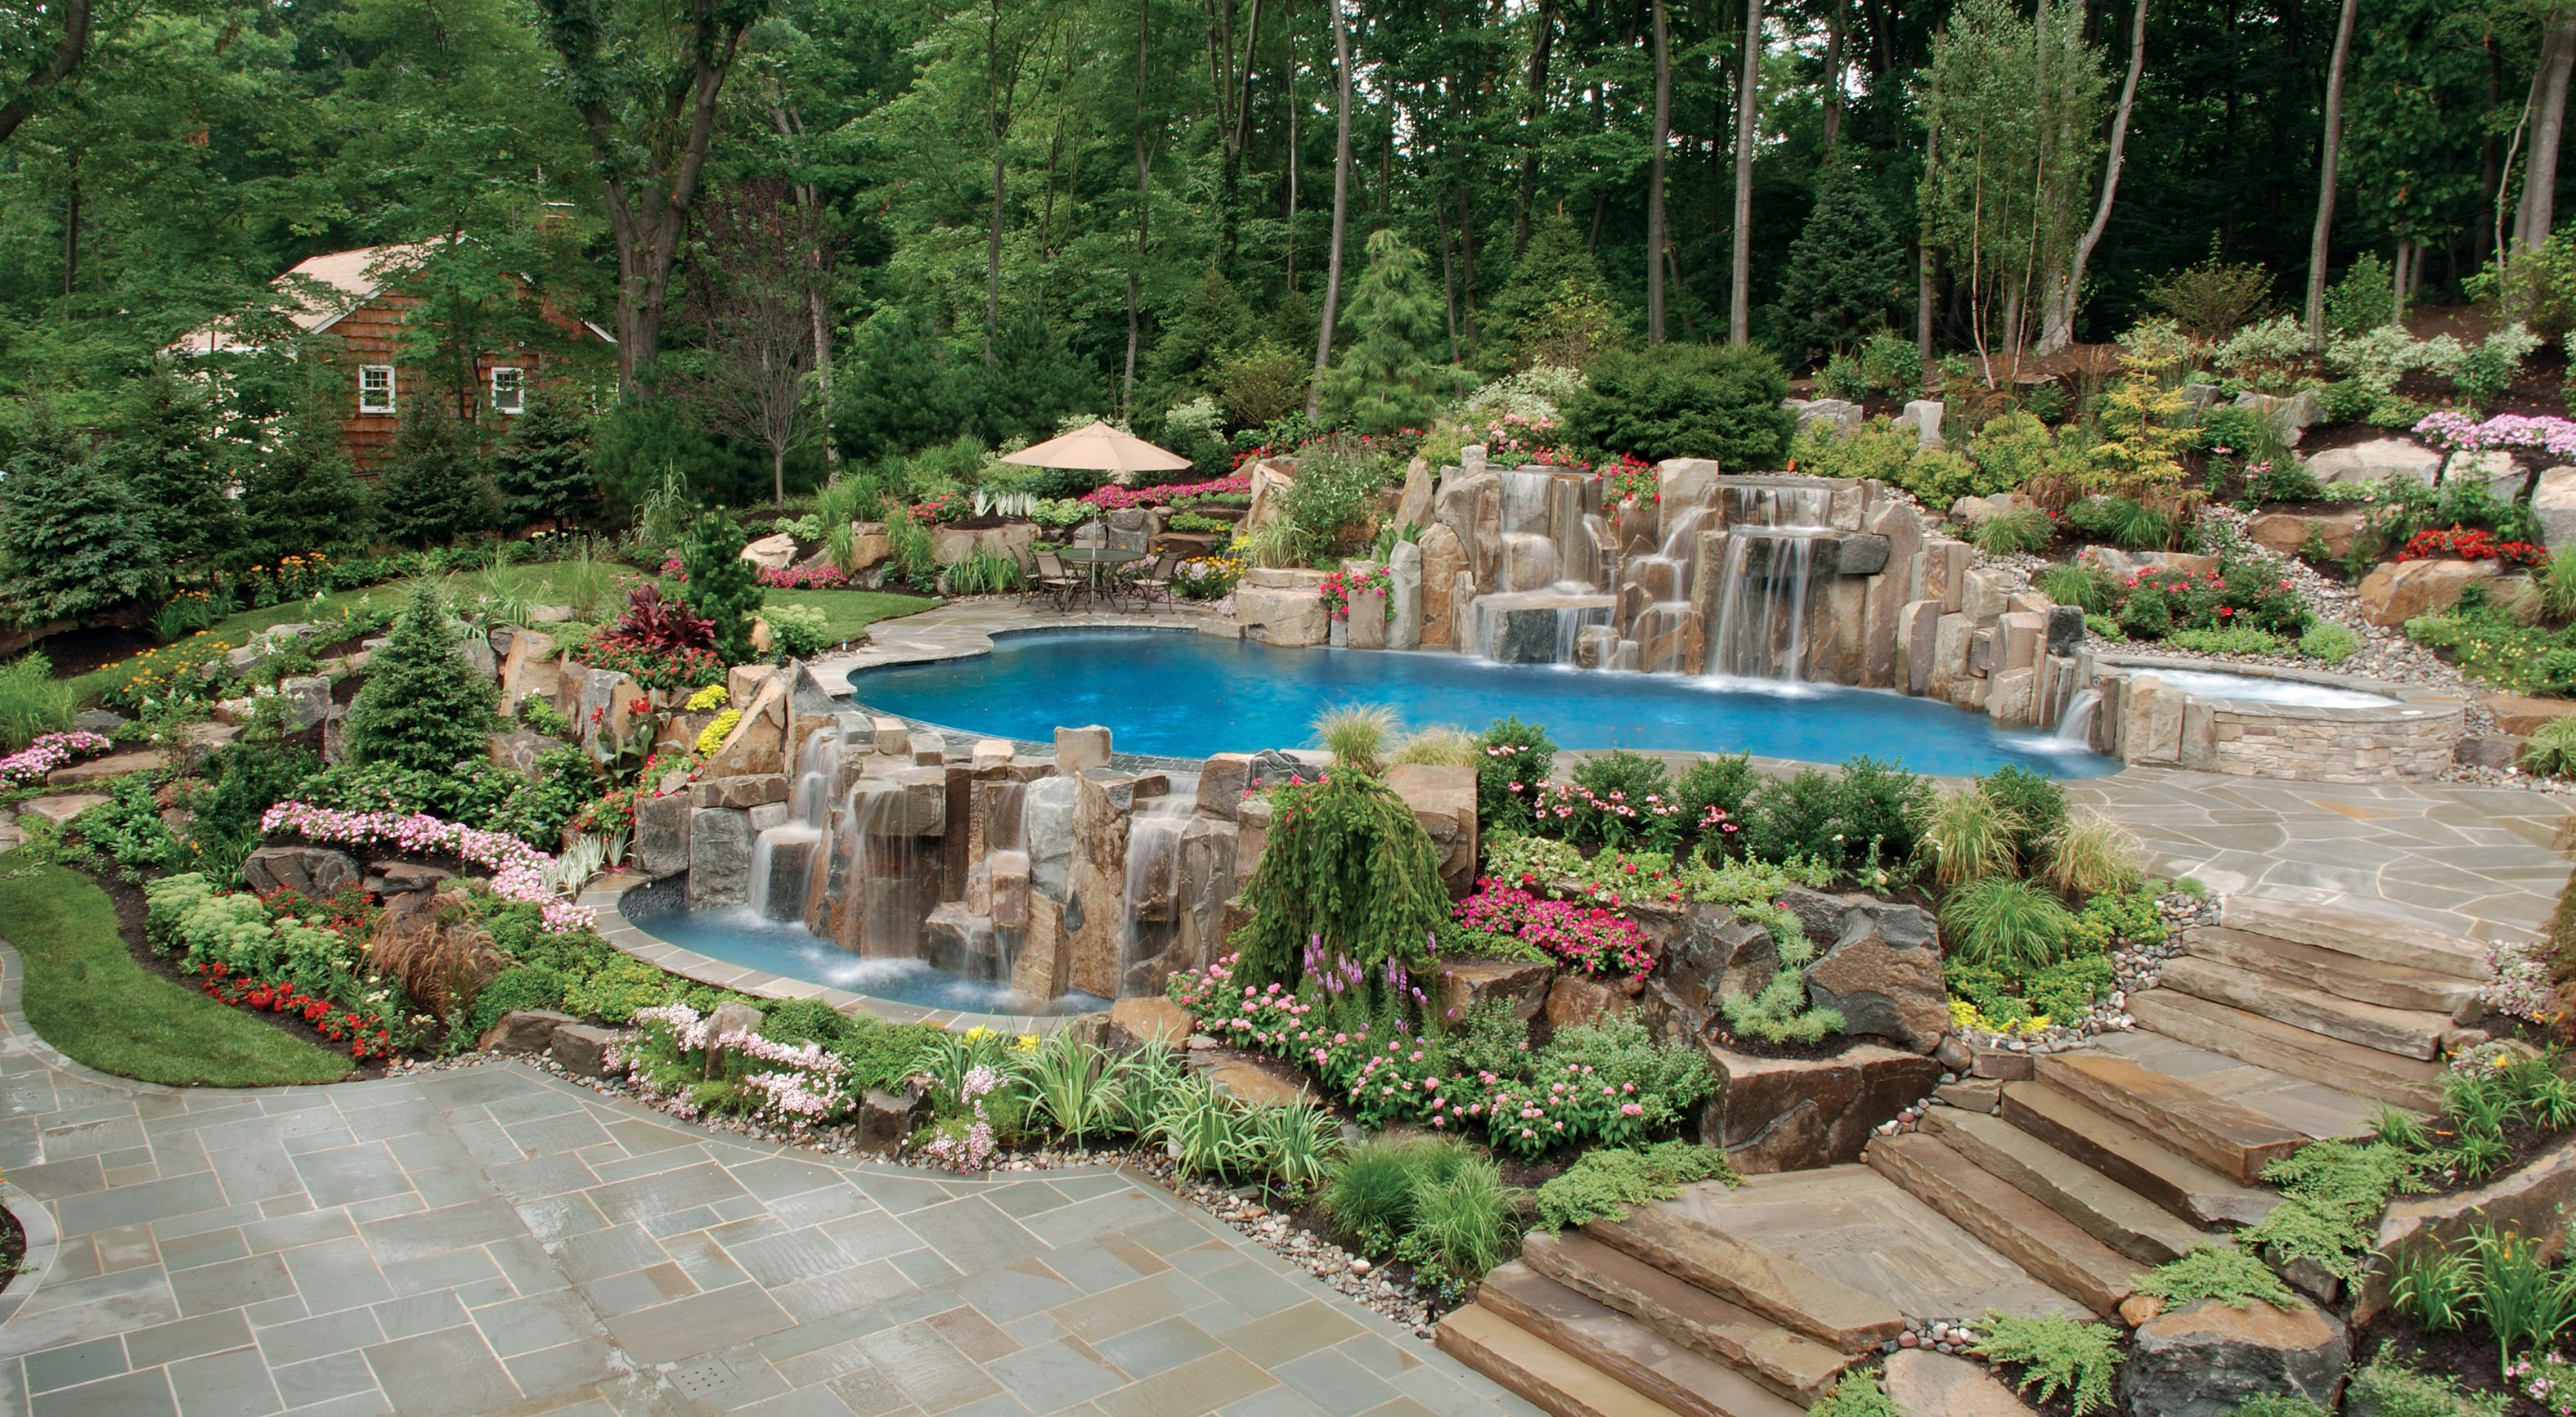 Building a natural swimming pool - Extravagant Pool With Natural Design Idea Natural Swimming Pools